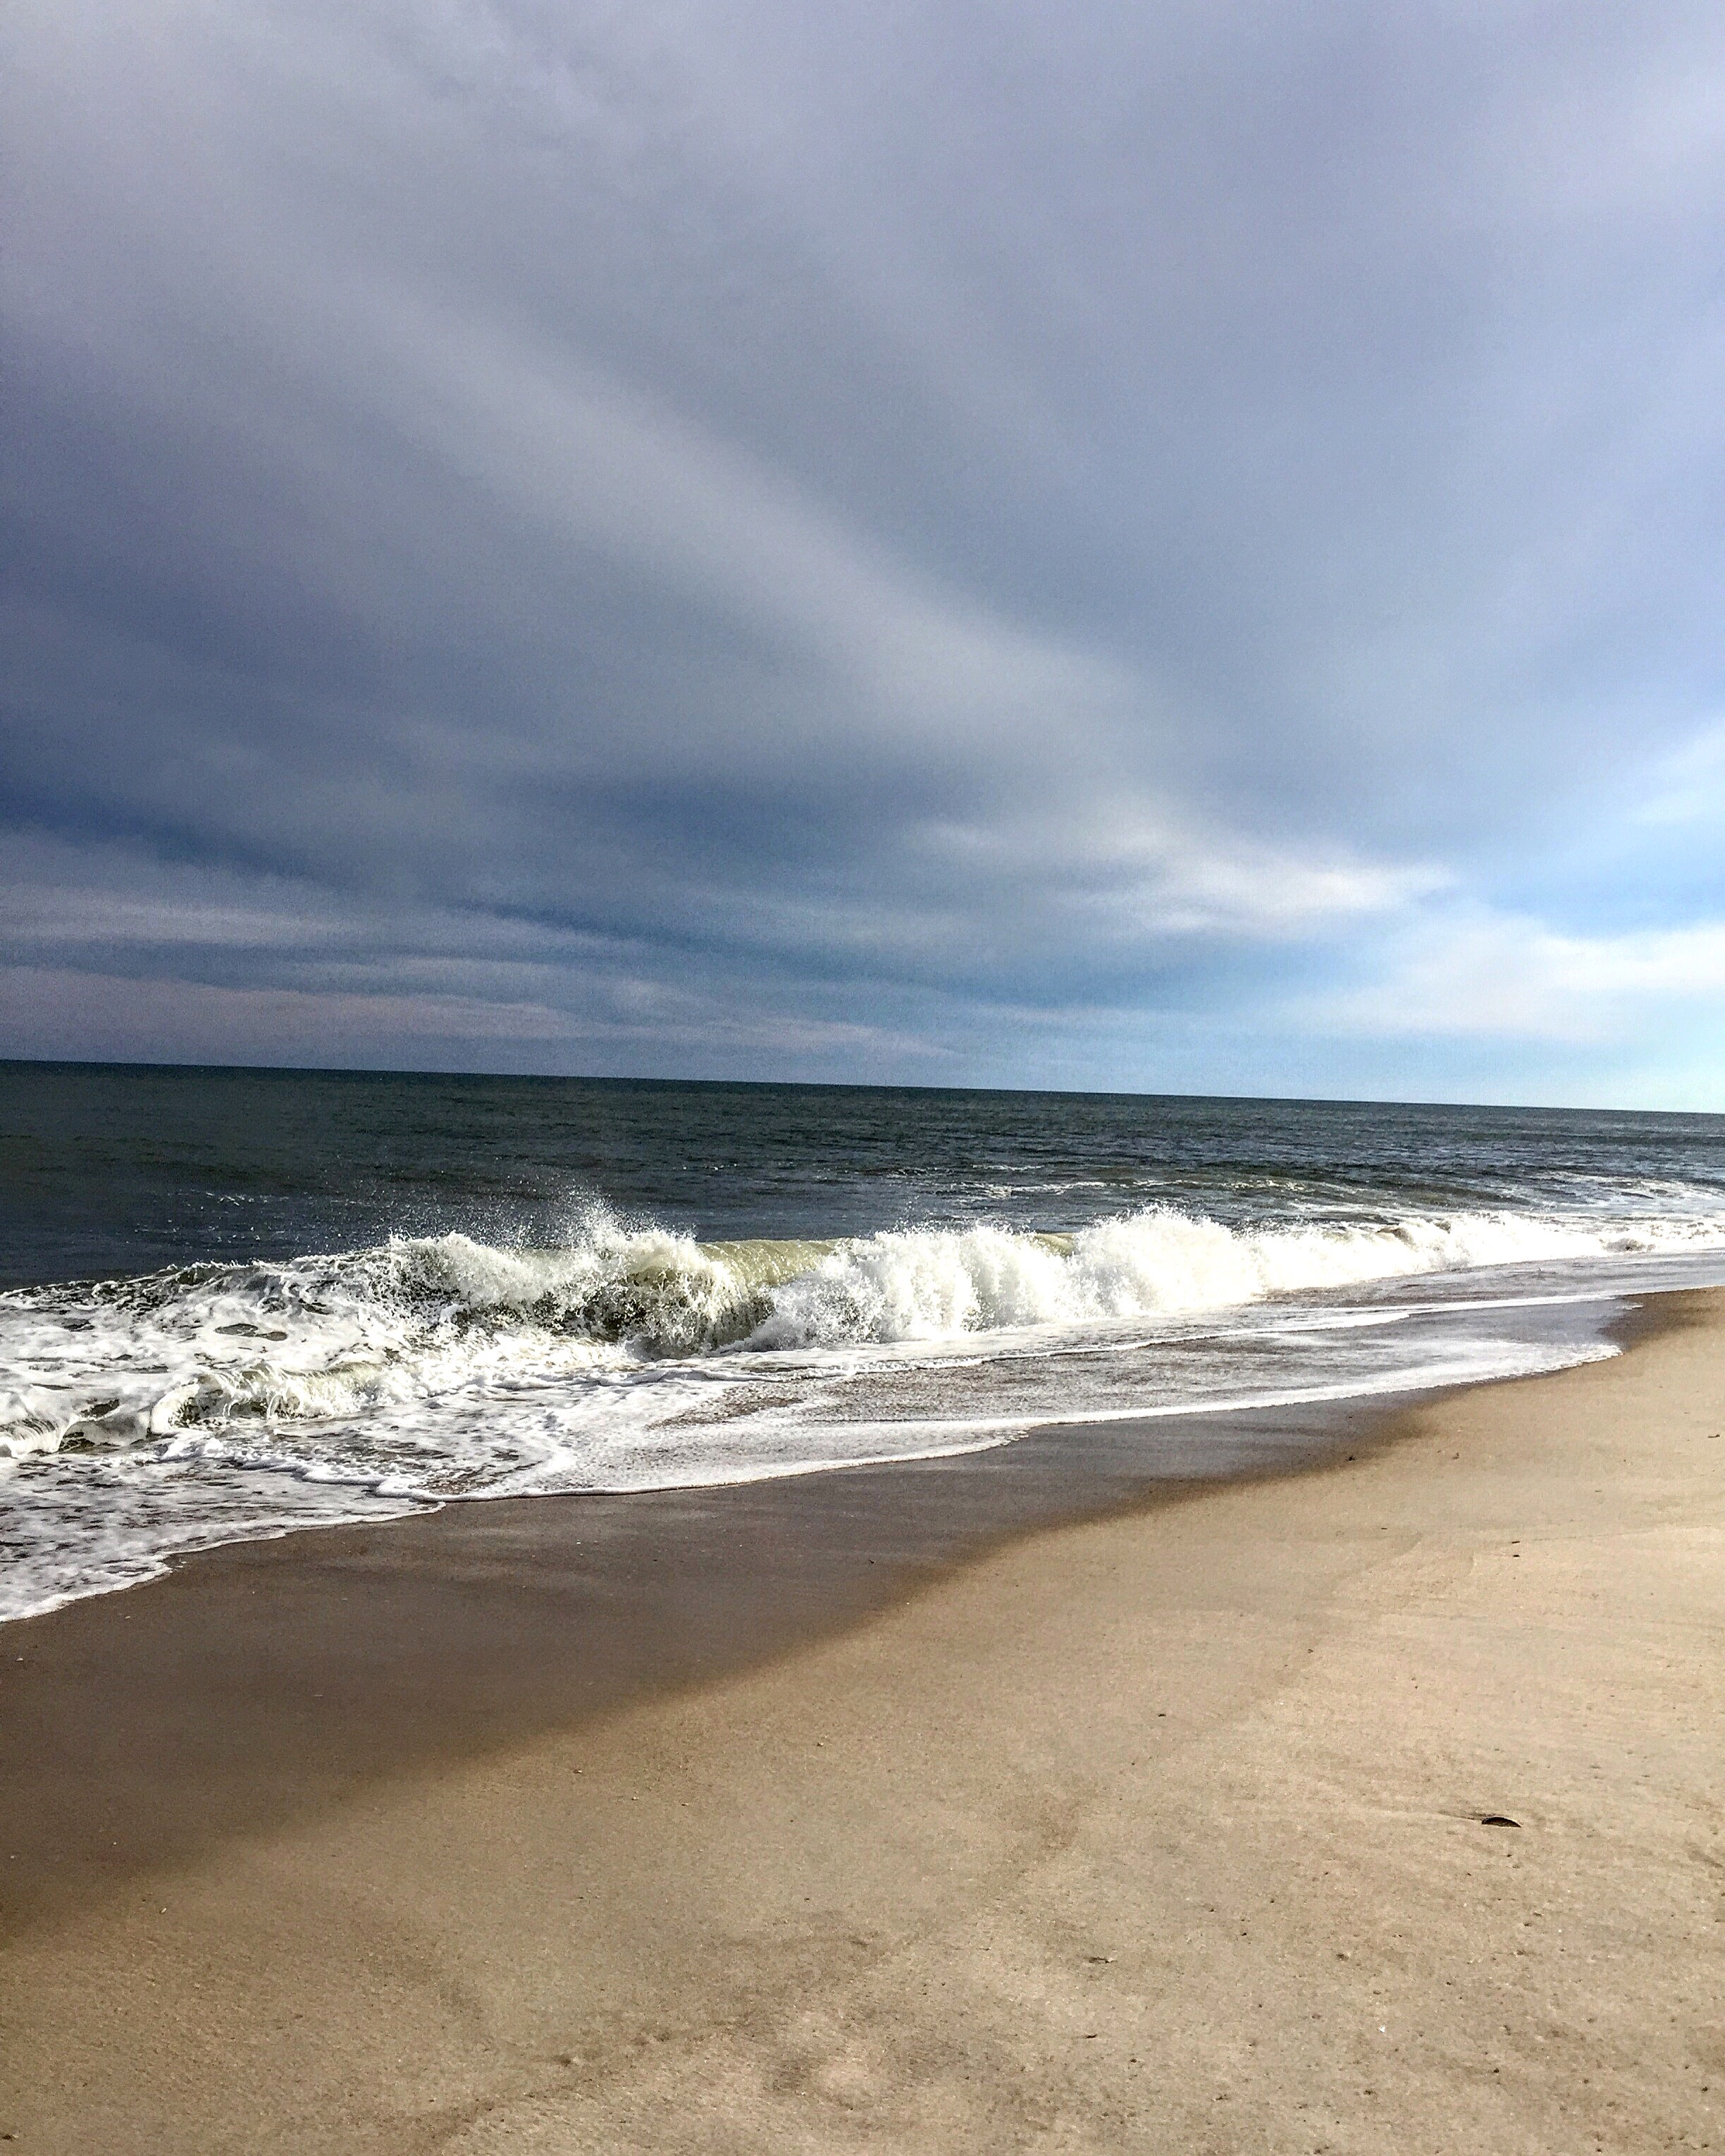 Dramatic lighting at the beach in Fire Island